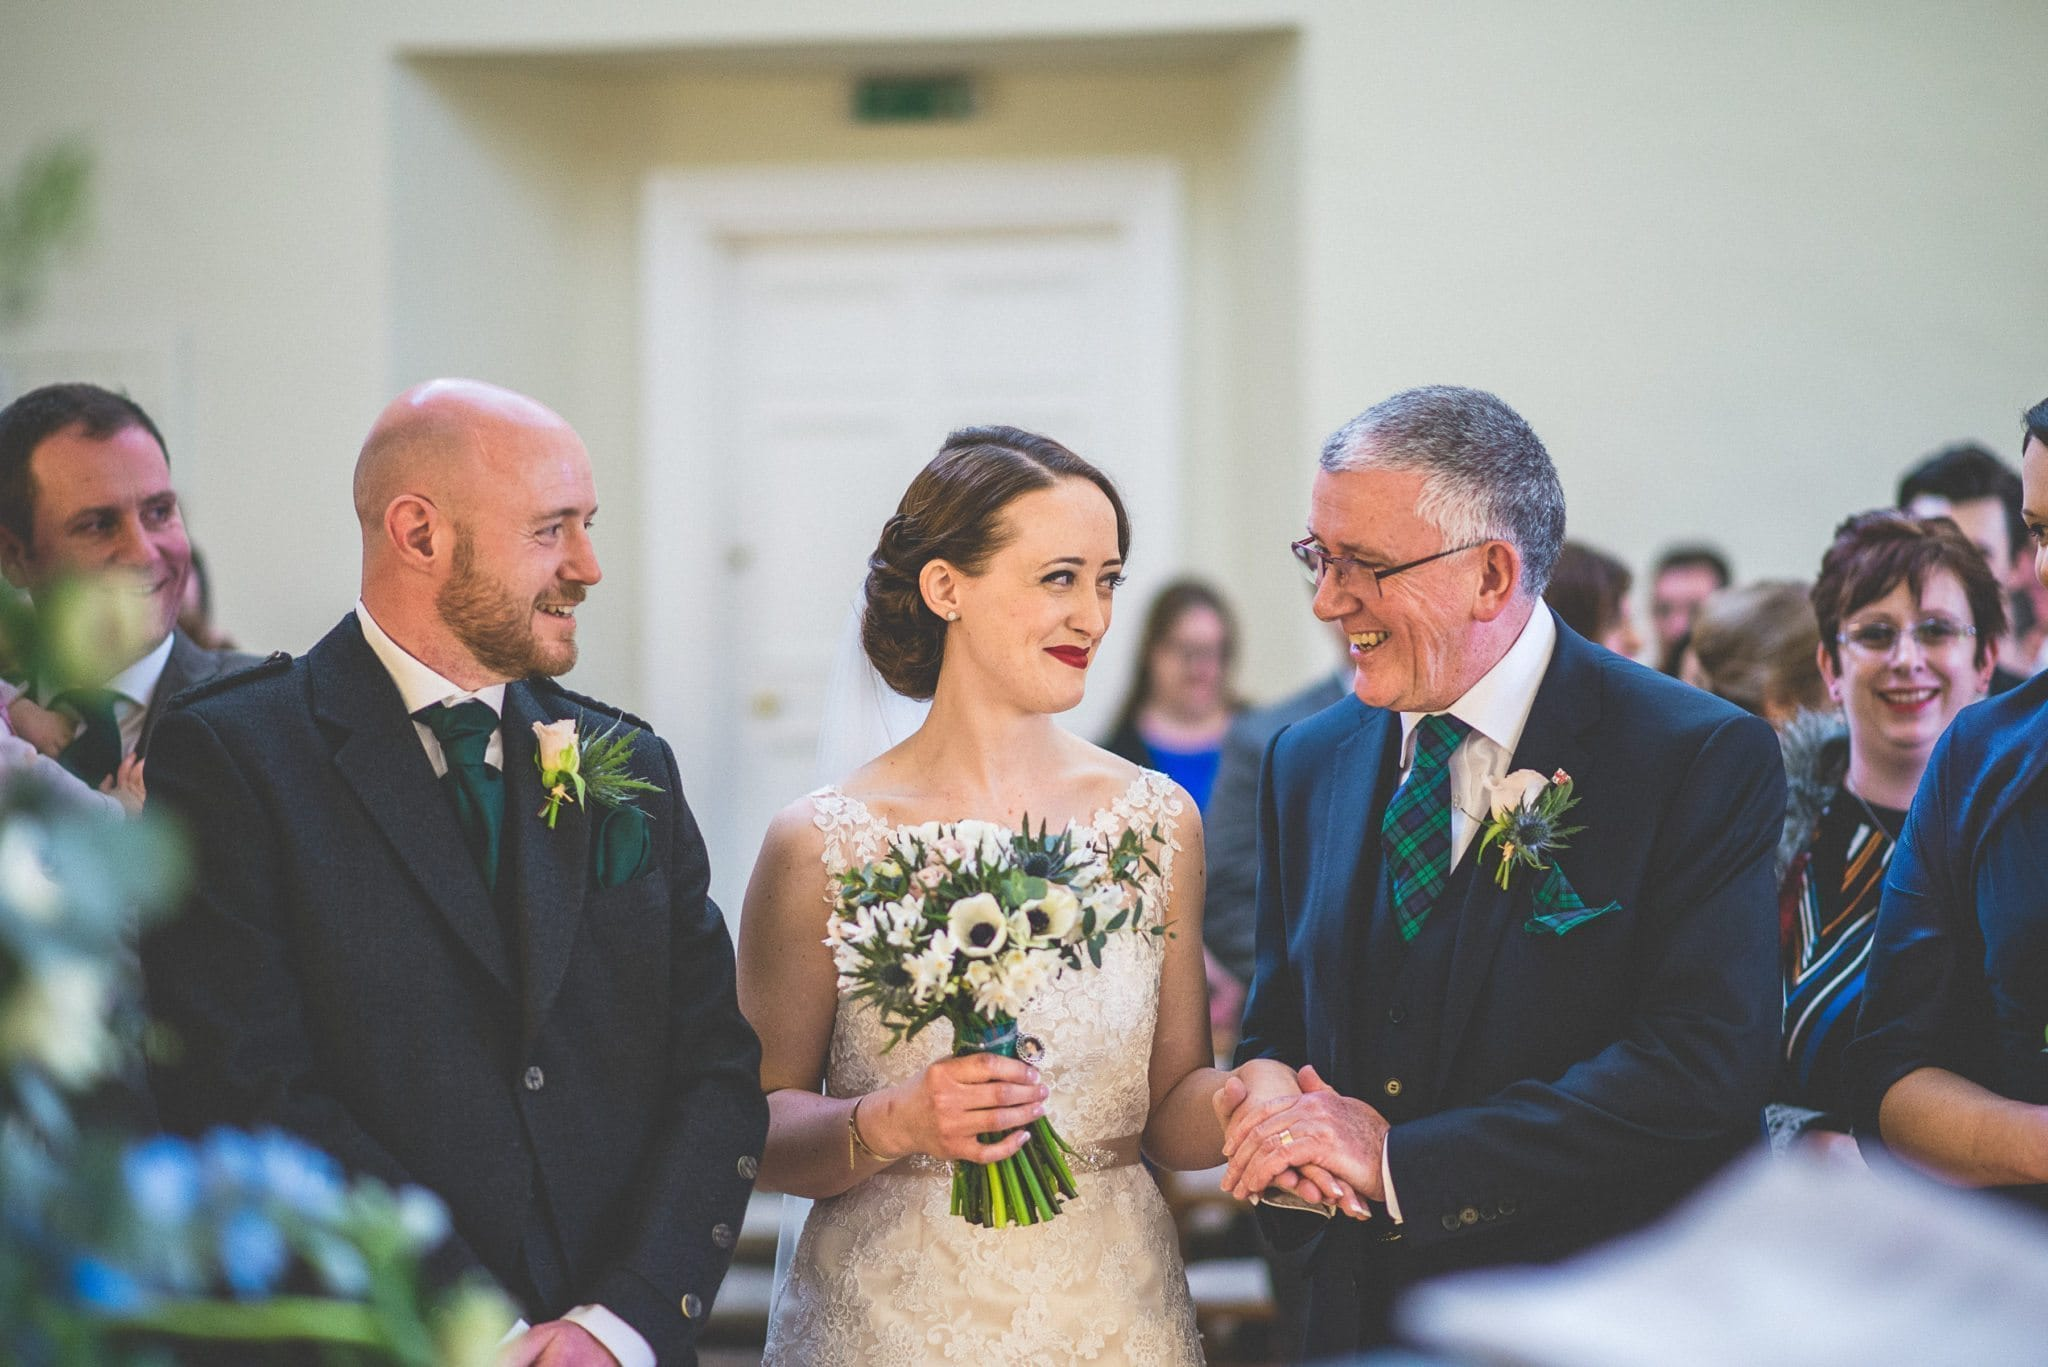 Jen shares a smile with her father as she reaches the end of the aisle